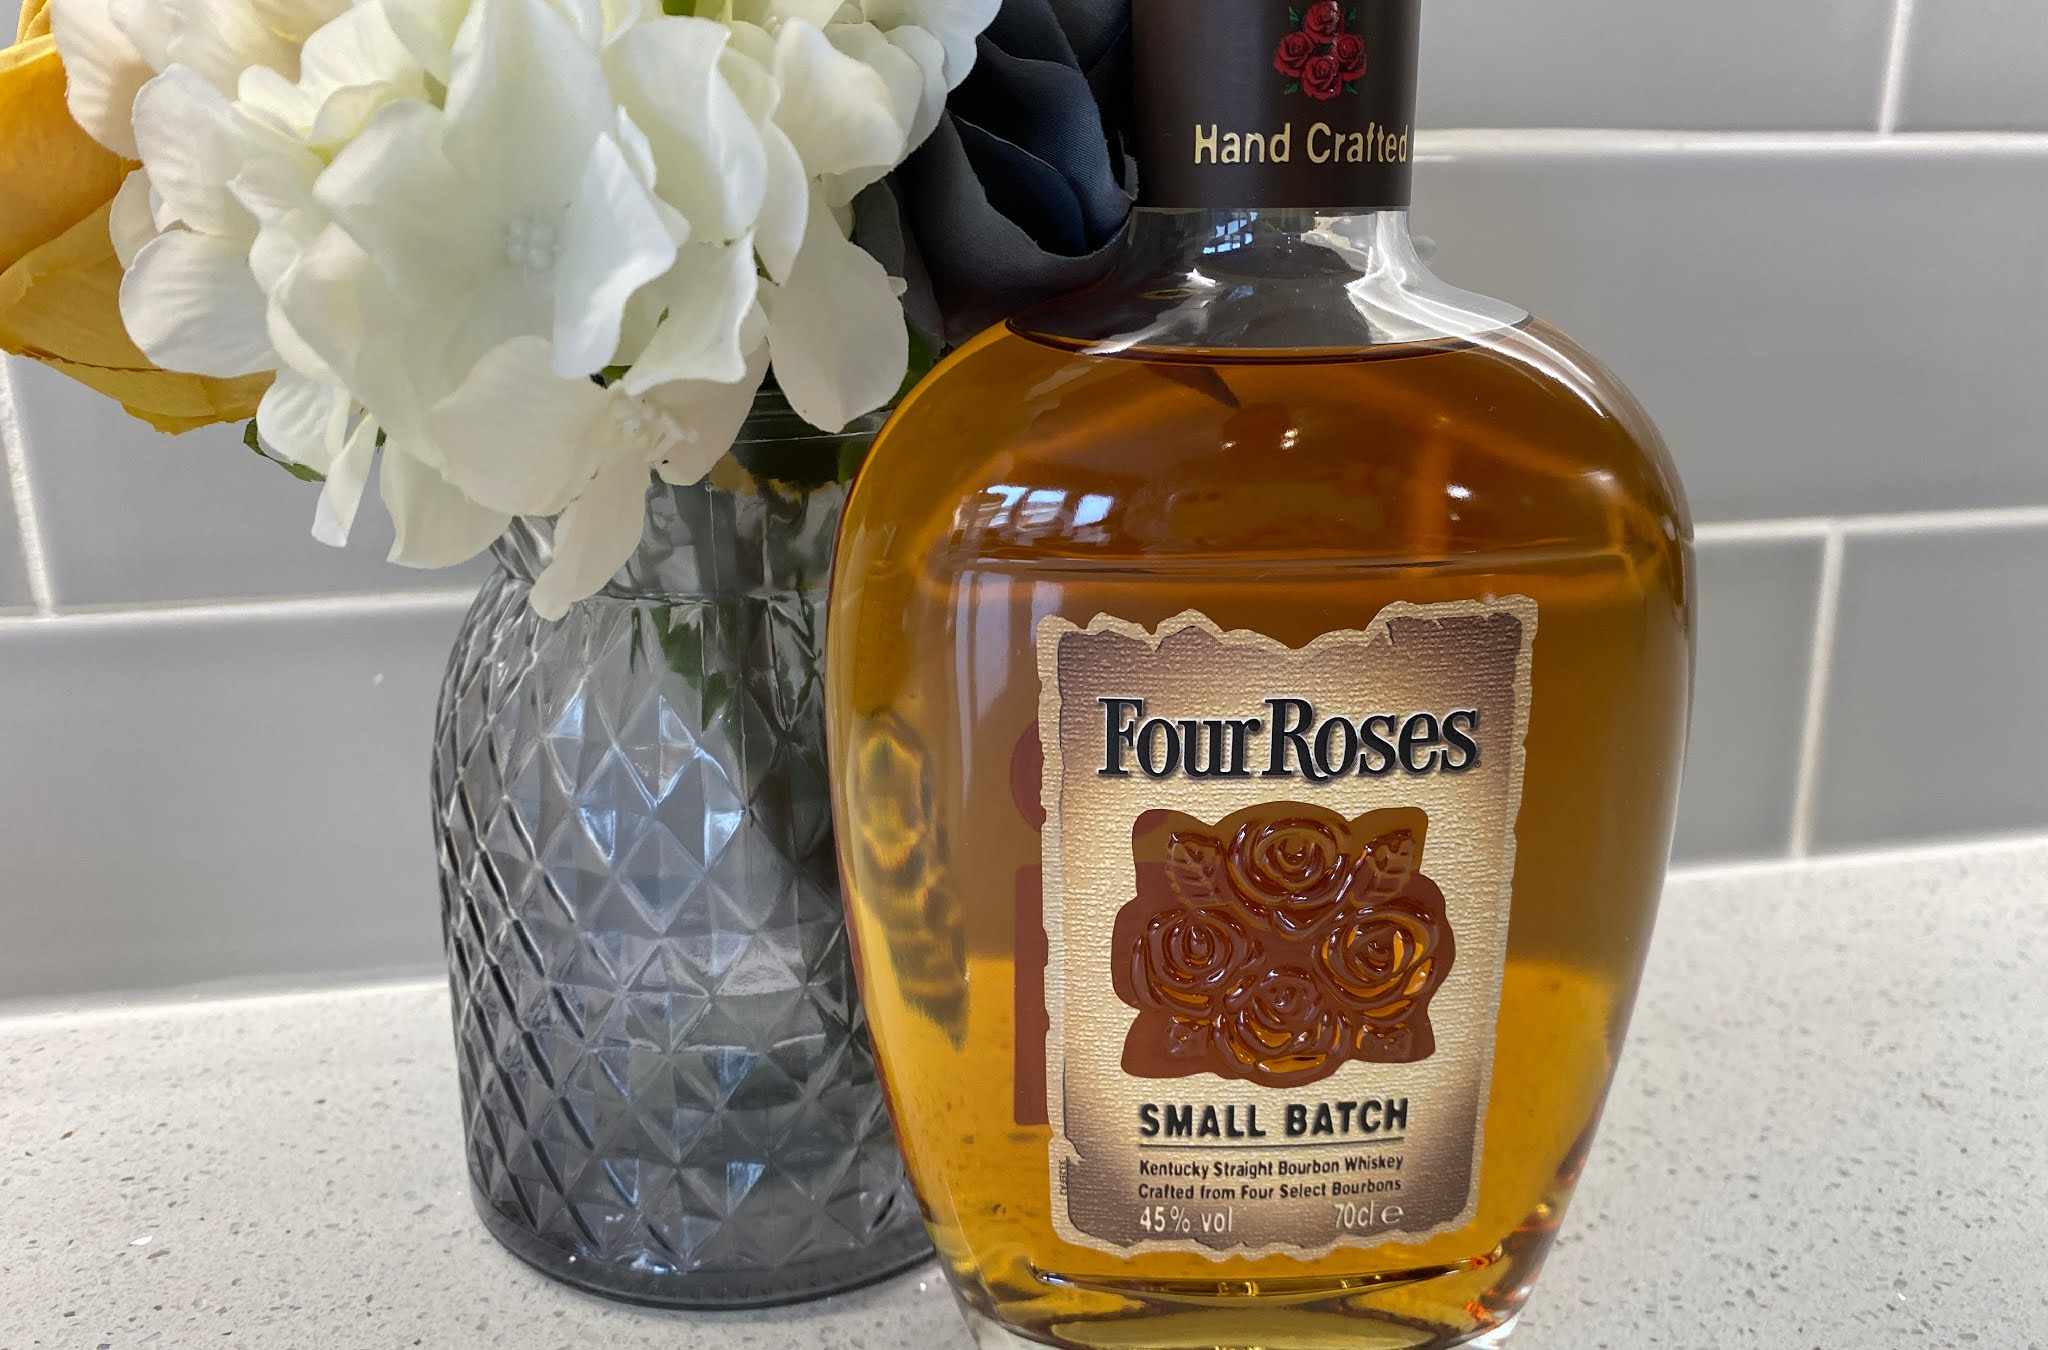 Bottle of Small Batch four roses